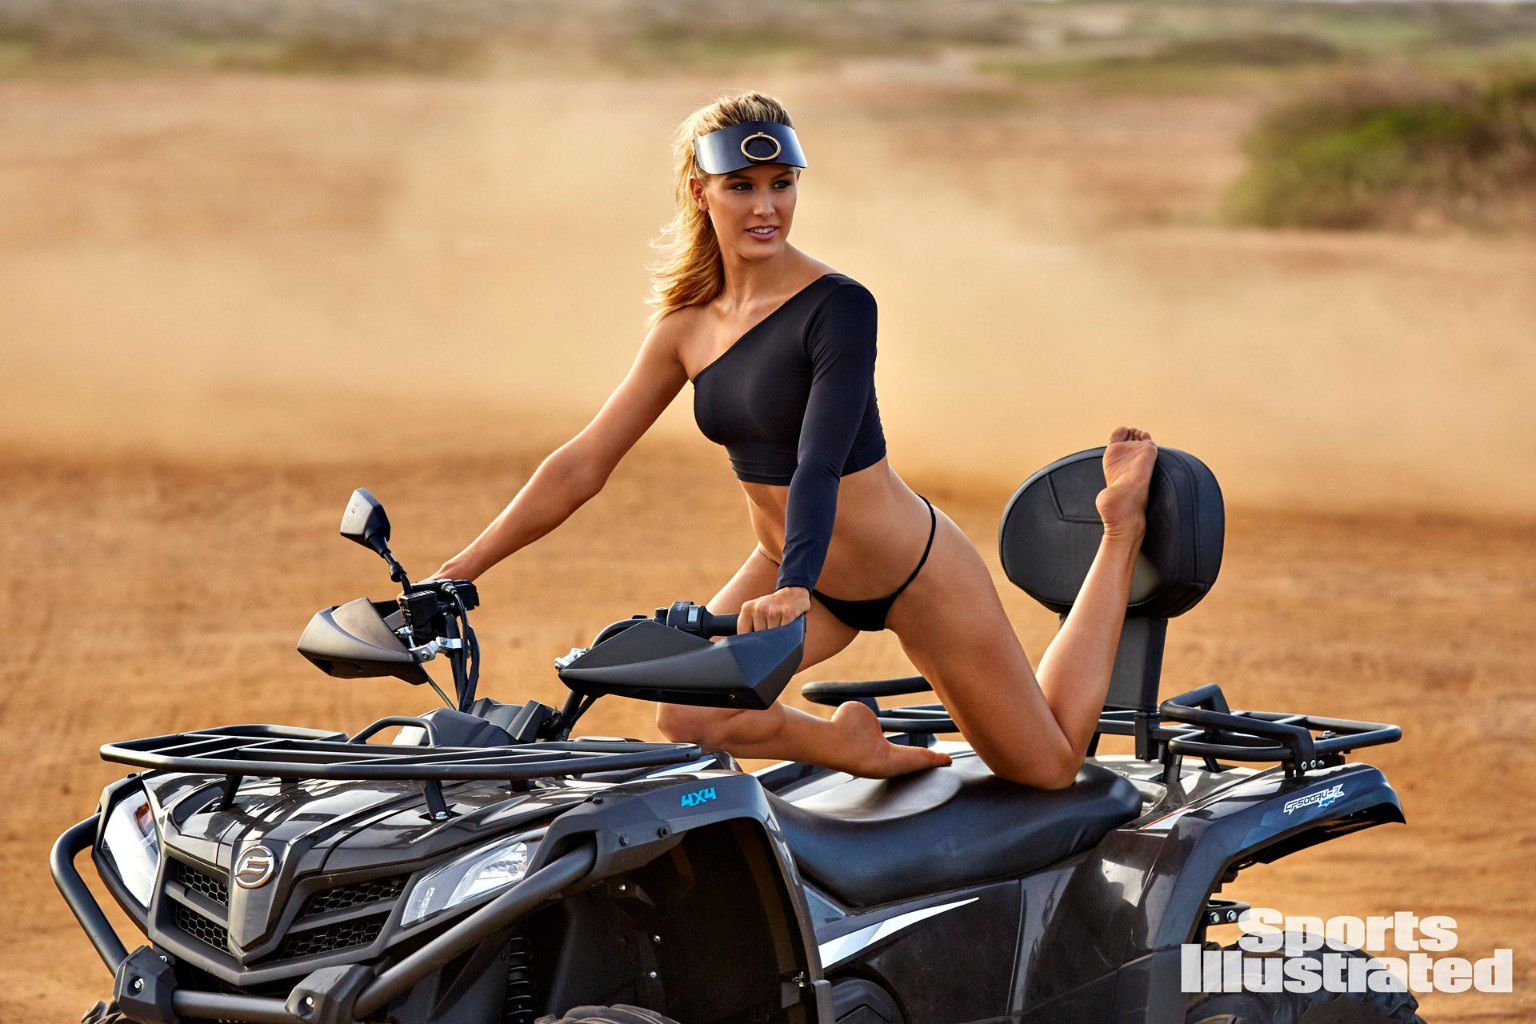 eugenie-bouchard-super-sexy-in-sports-illustrated-swimsuit-issue-2018-12